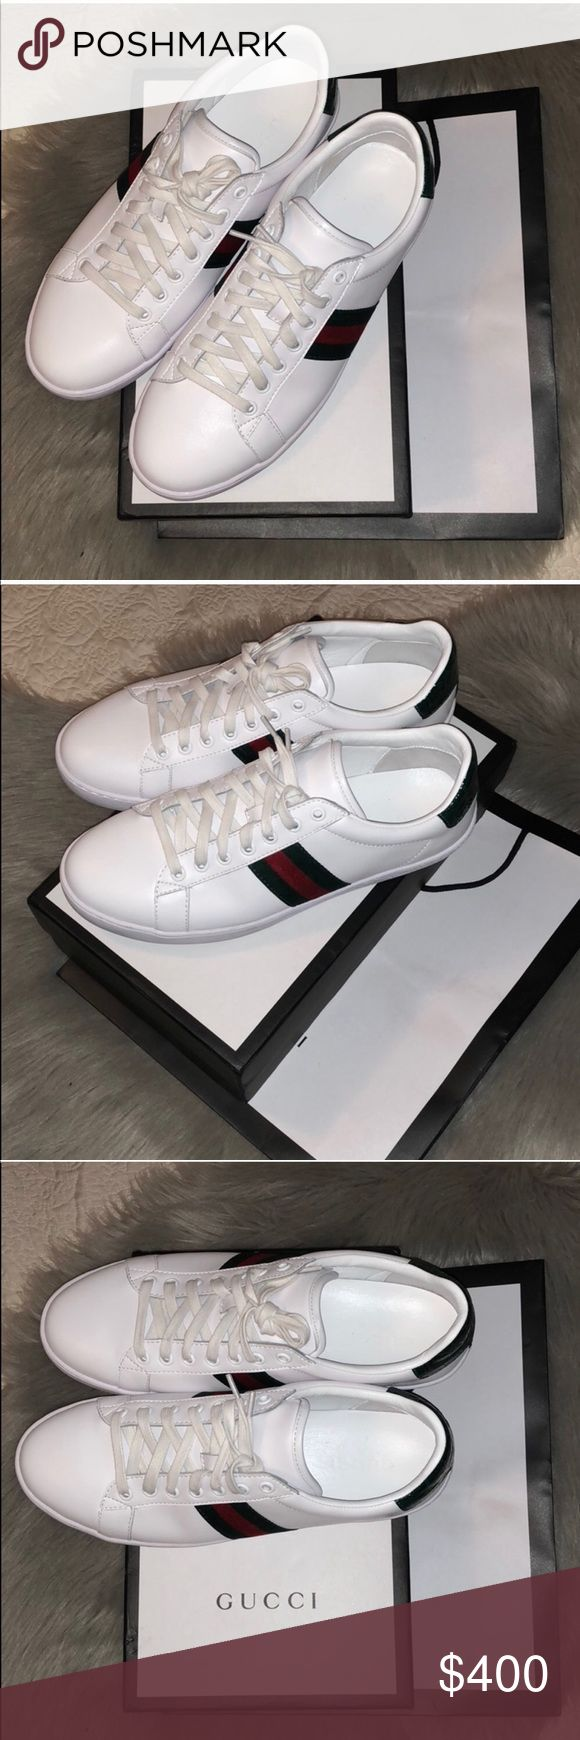 Gucci Plain Ace Leather Sneakers Size: US 10 Condition: 9/10. Worn literally once!    * Ships the same or next business day EXCLUDING weekends.   * No pricing discussions, submit offer if you are serious. Comments will not be responded & no trades!   Ignore: Supreme Bape Louis Vuitton Chanel Goyard Chanel Gucci Givenchy Nike Adidas J Crew Yeezy Card Wallet Vintage Burch Zara Balenciaga LV Snake  Purse Crossbody Sandals Jacket Shark Burberry Nordstorm Luluemon Fendi Sneakers Heels Ralph…